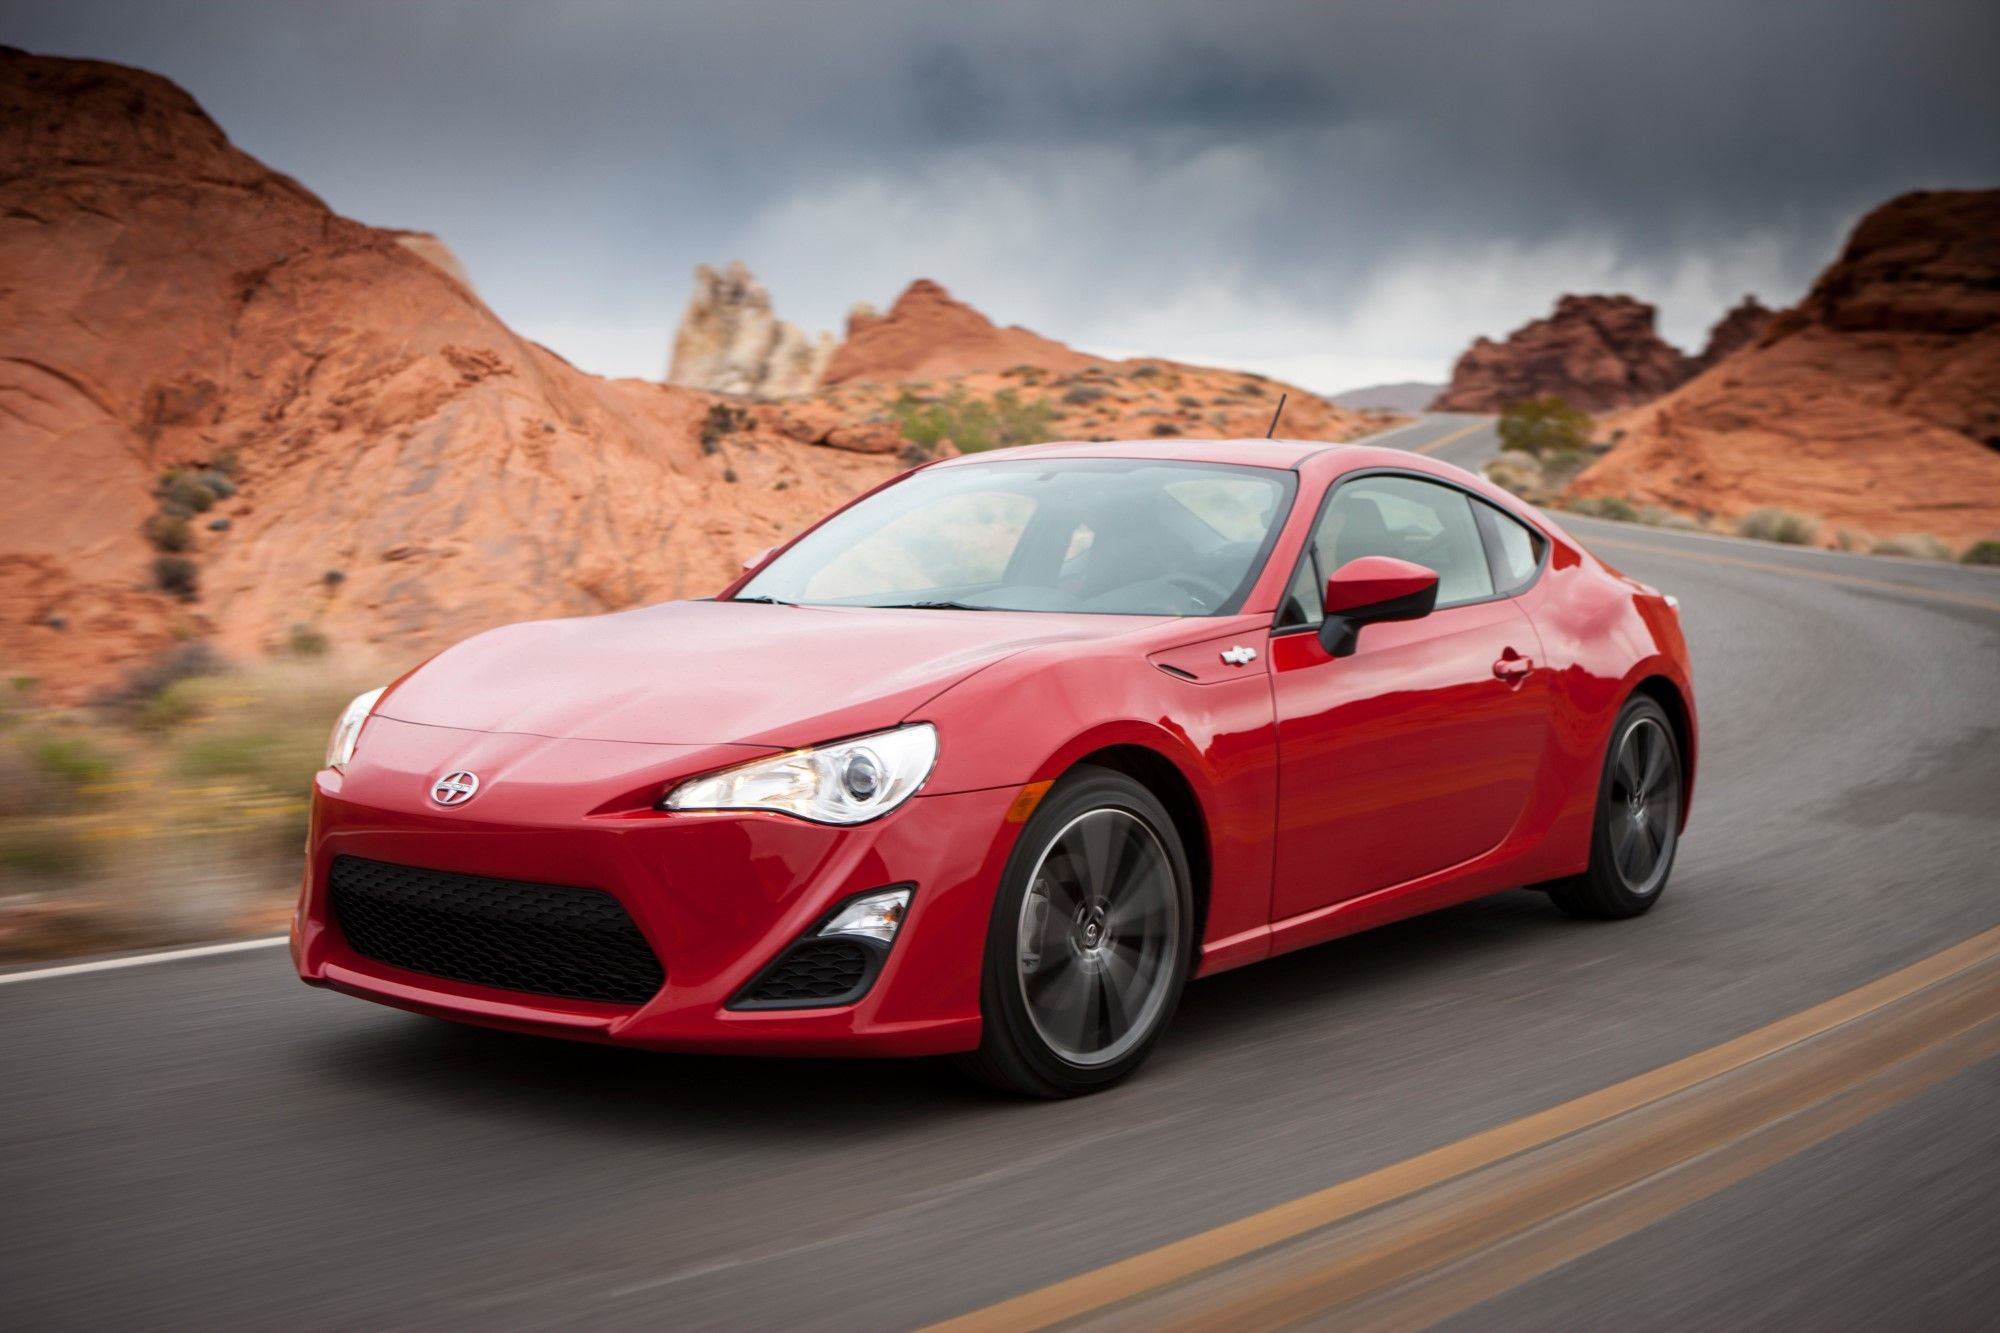 Toyota Blurs Games And Reality With GT 86 Scion FR S Telemetry